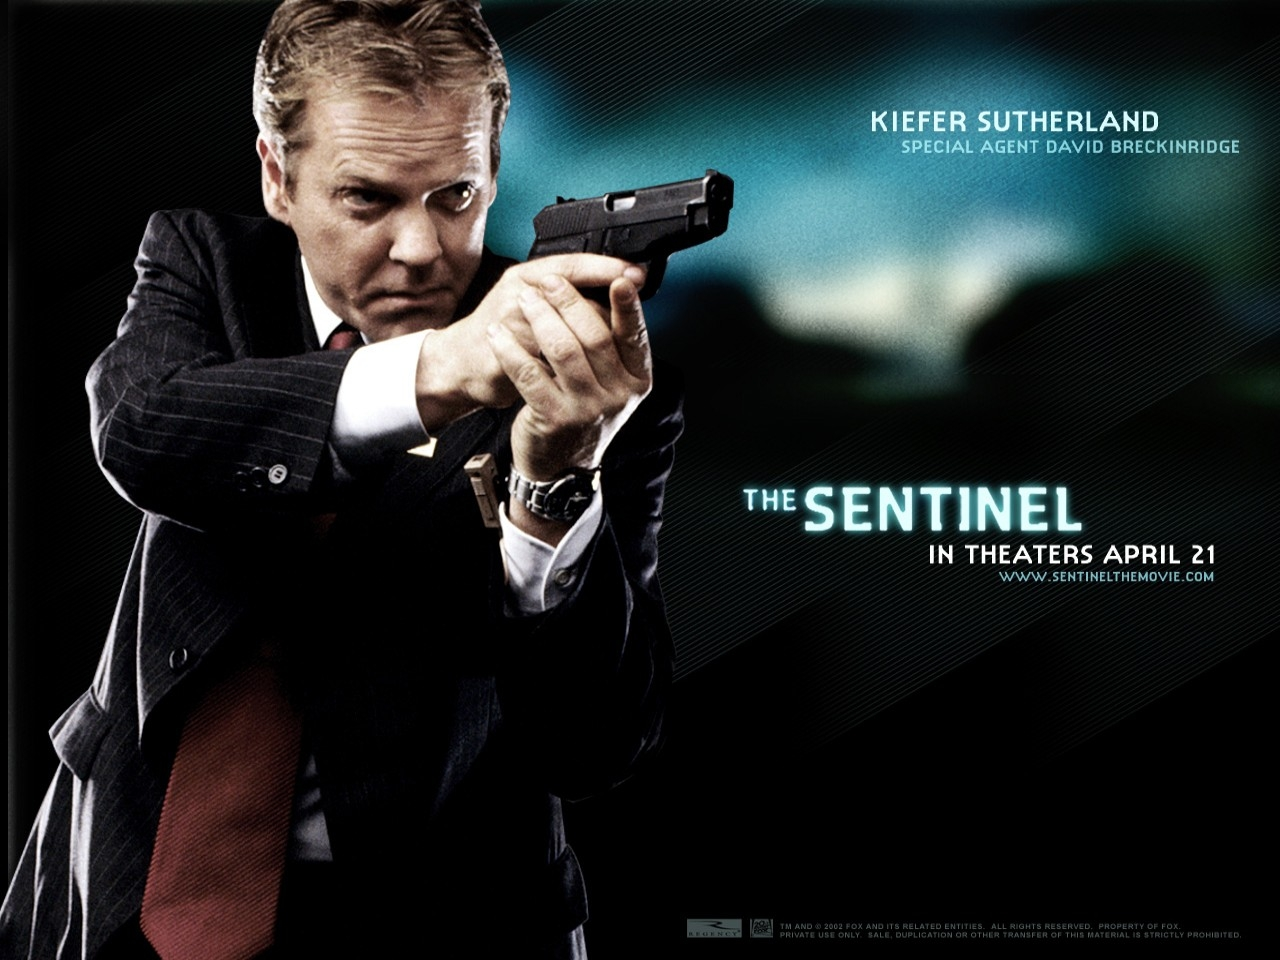 Wallpaper del film The Sentinel con Kiefer Sutherland